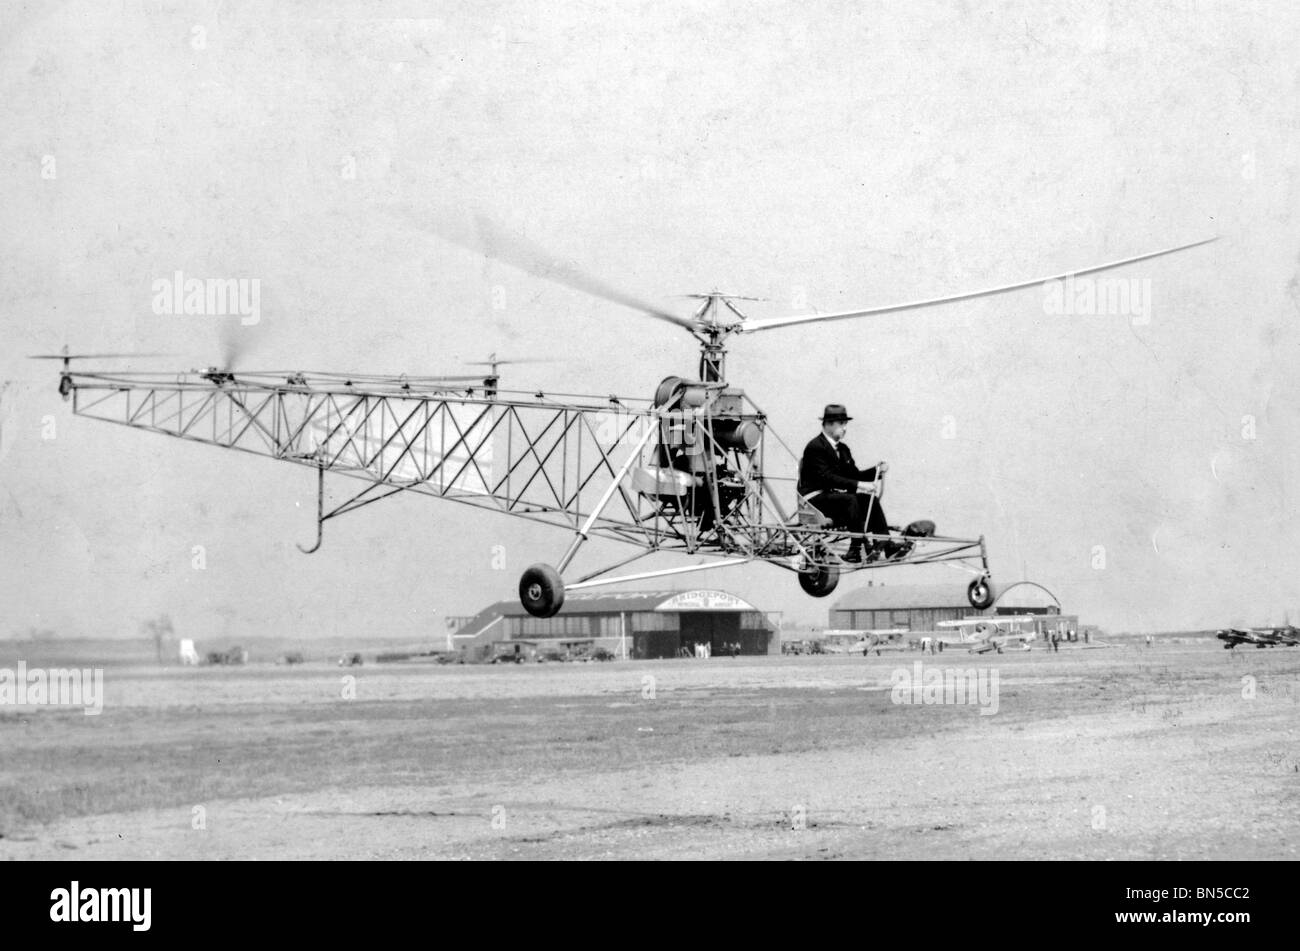 IGOR SIKORSKY (1889-1972) Russian-American aeronautical engineer who pioneered both fixed wing and helicopter aircraft - Stock Image